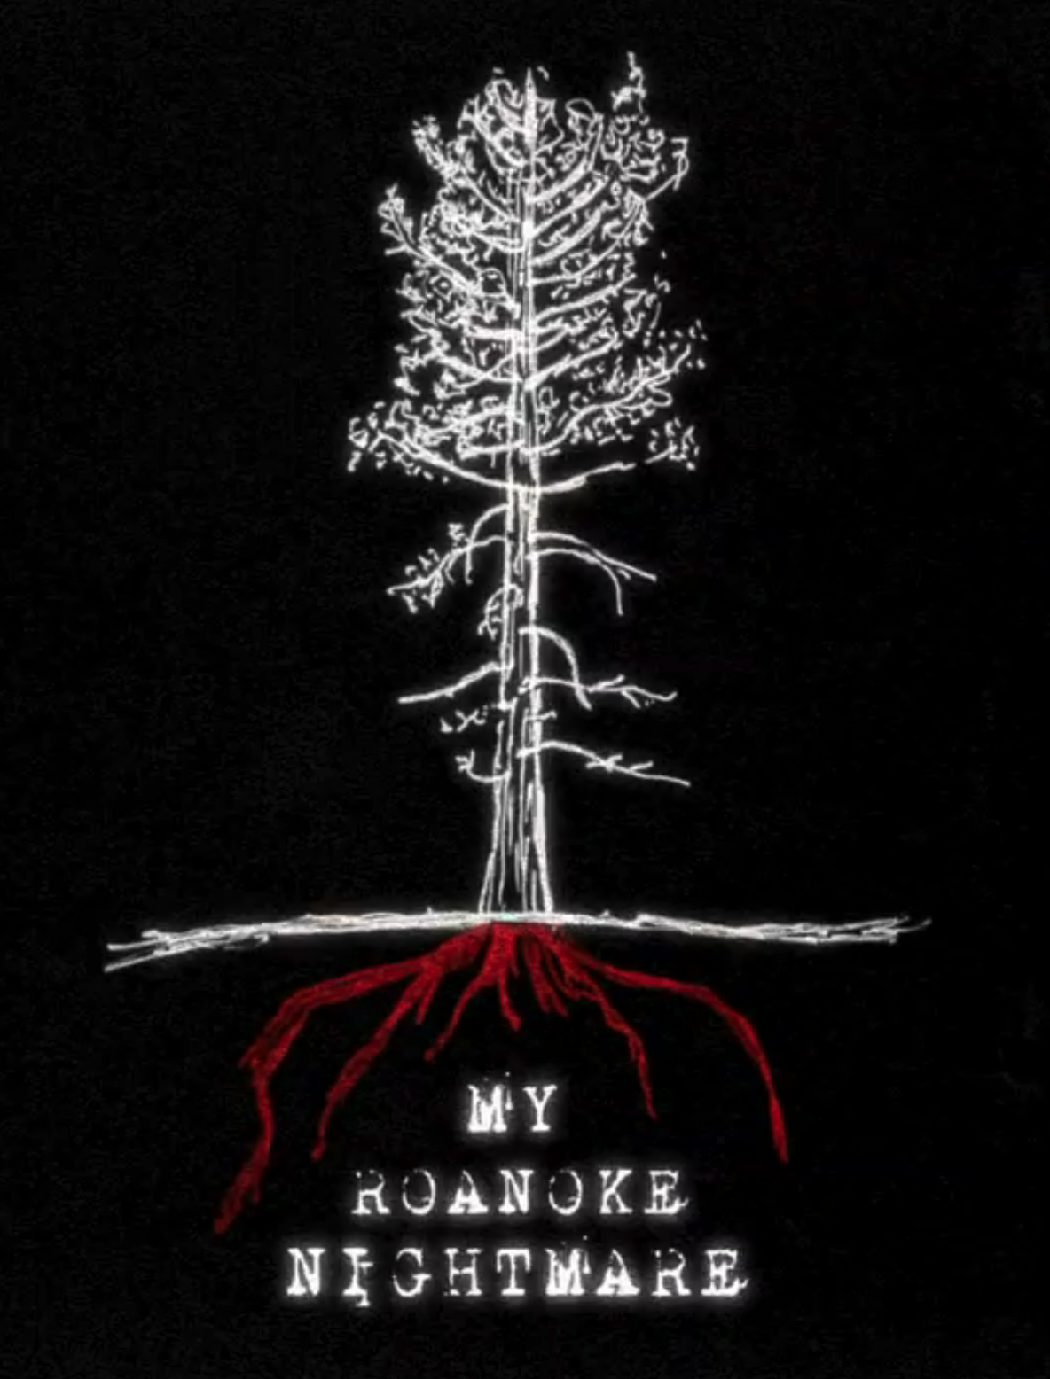 'My Roanoke Nightmare'